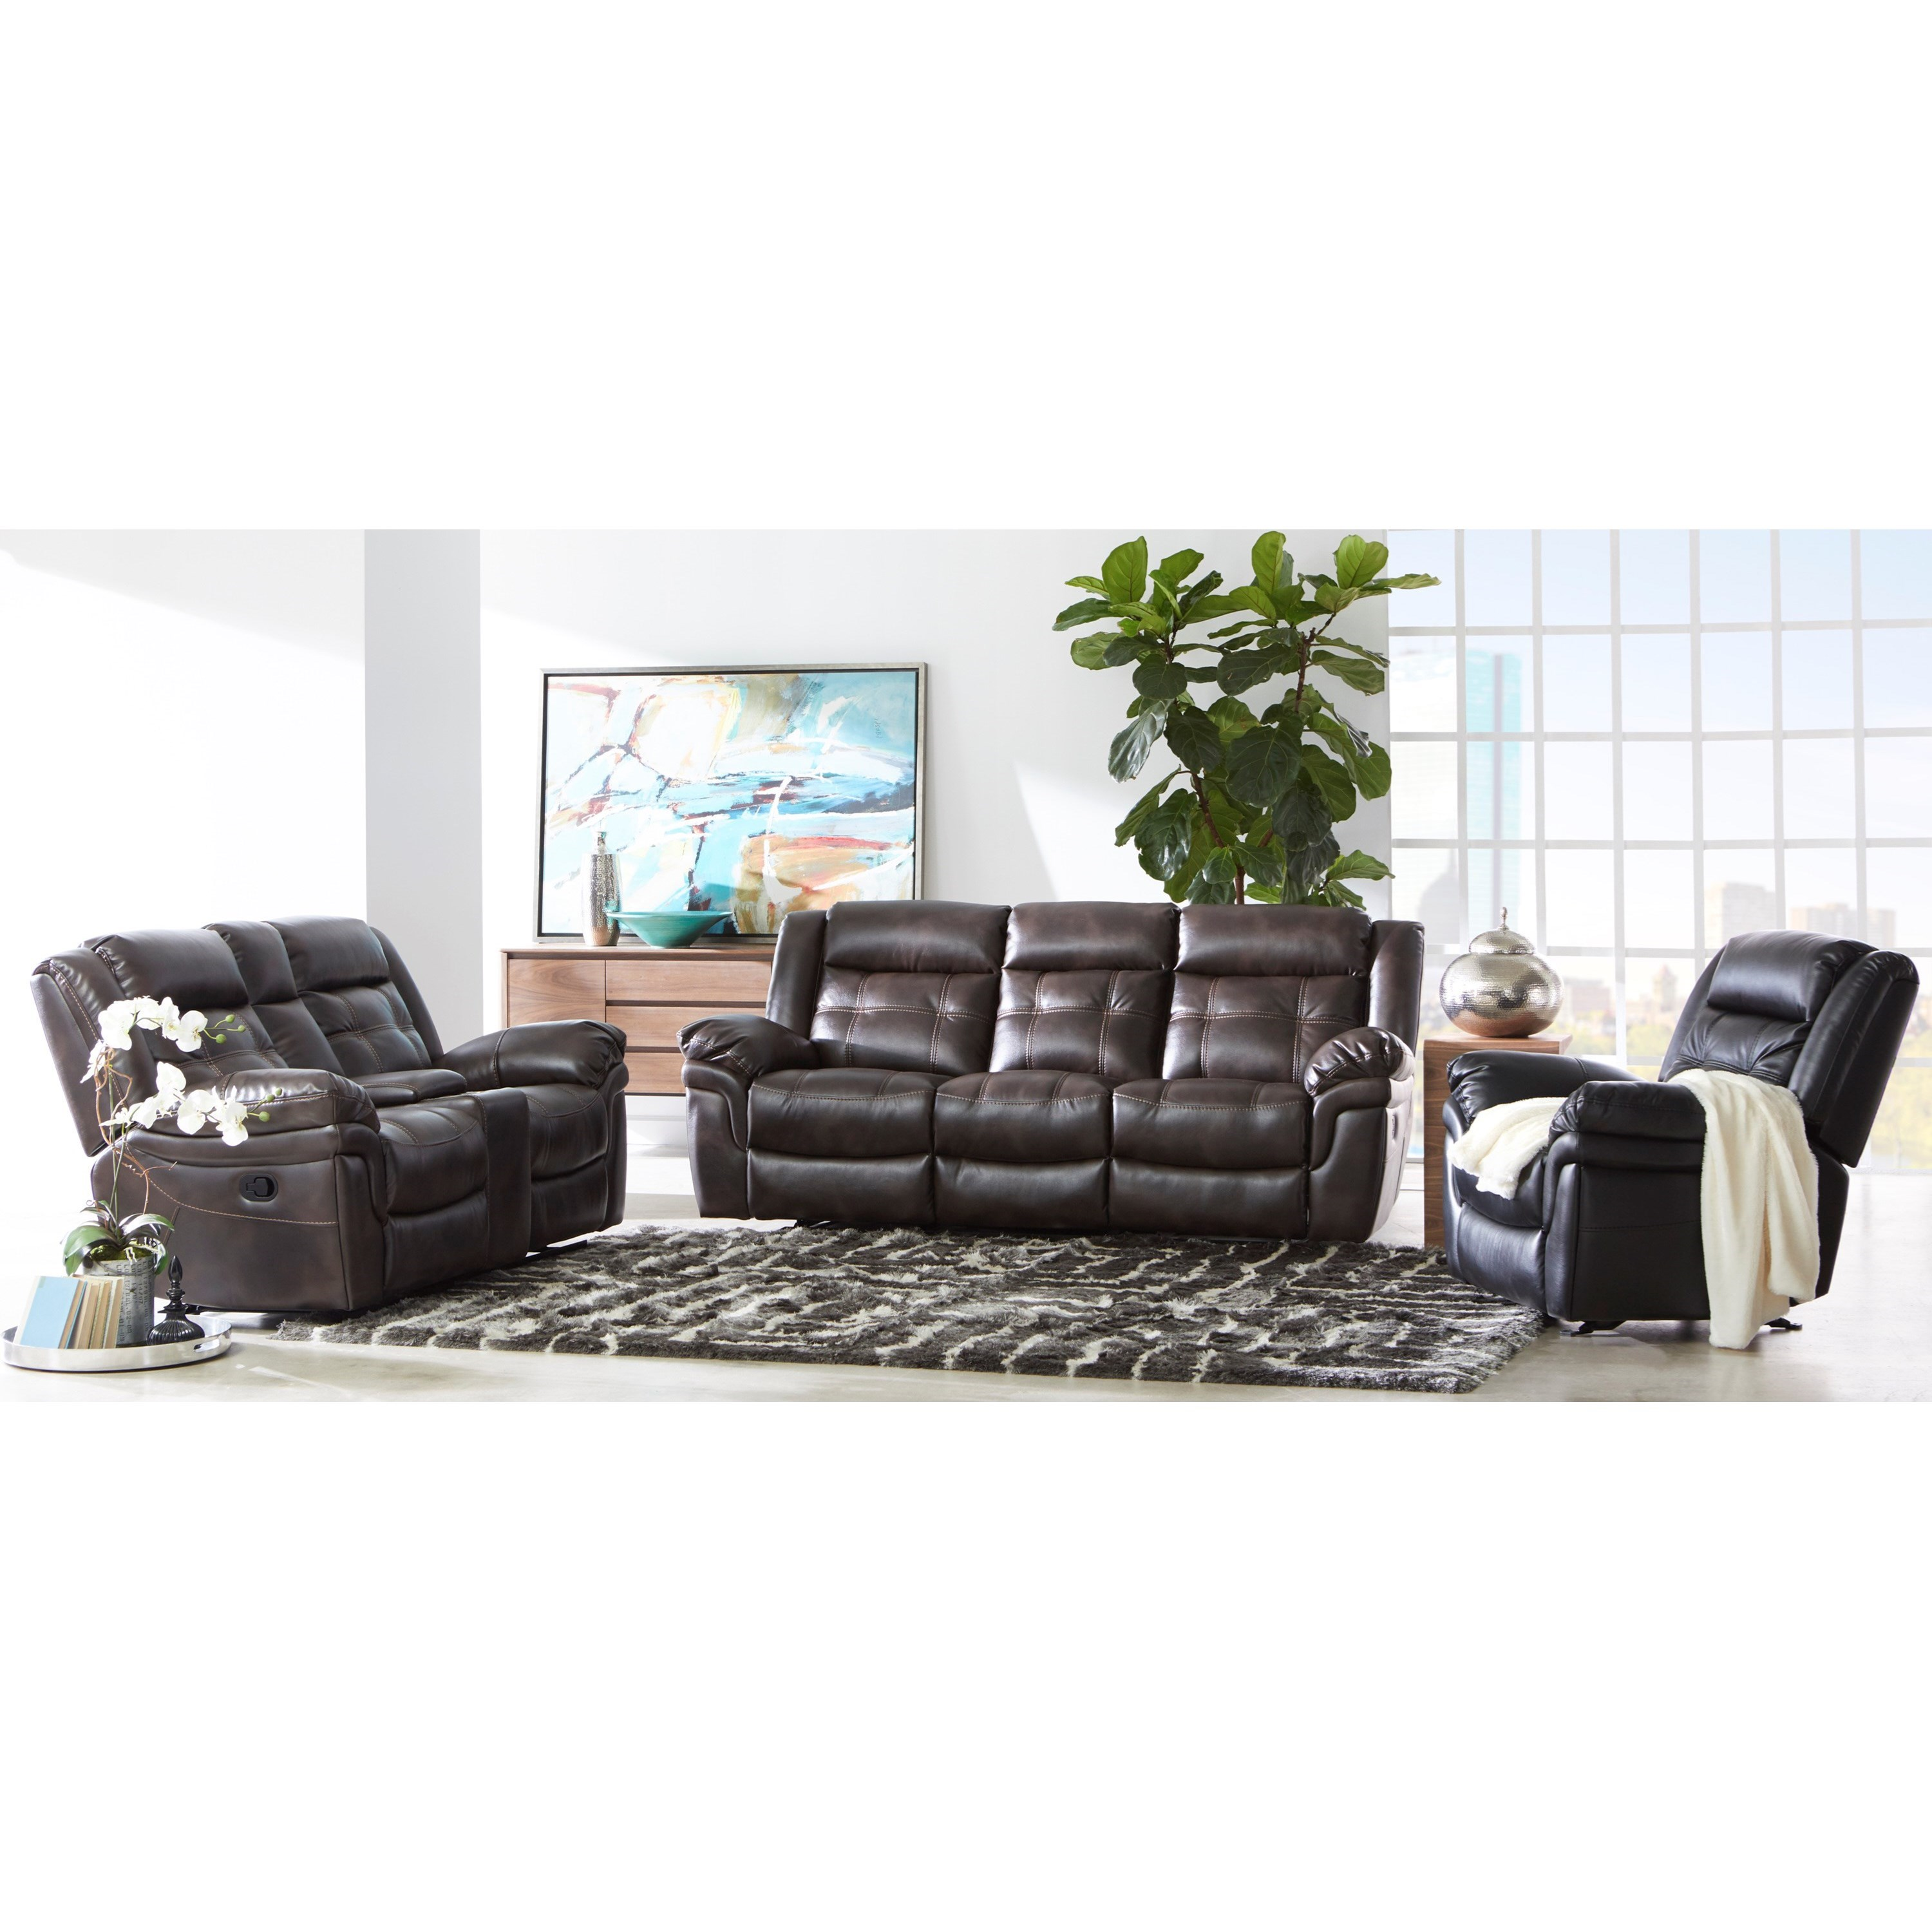 5700 Reclining Living Room Group by Cheers at Del Sol Furniture